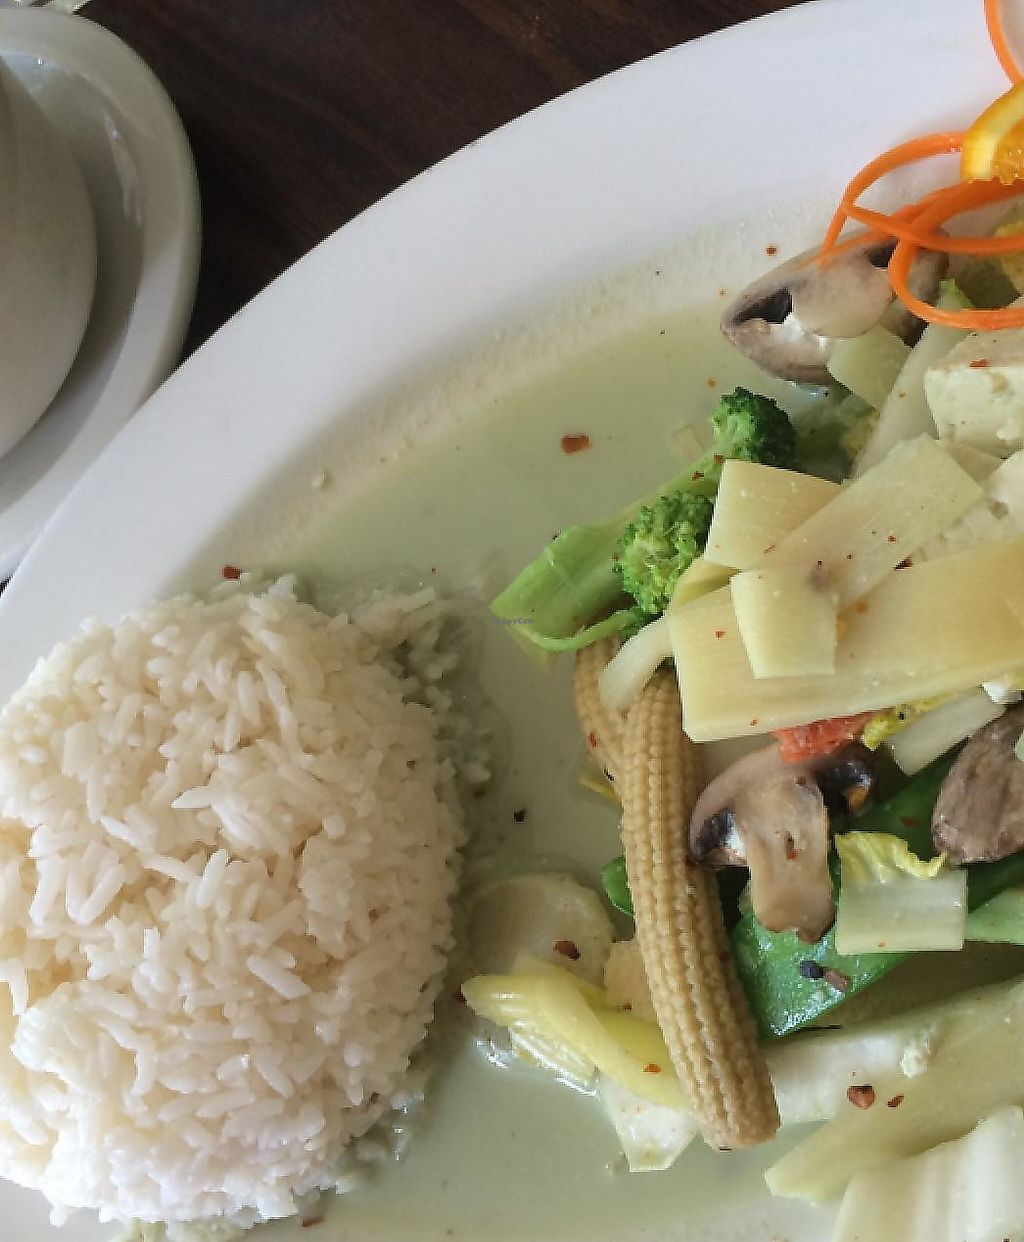 """Photo of Angel's Thai Cafe  by <a href=""""/members/profile/Tender%20Barbarian"""">Tender Barbarian</a> <br/>Green curry steam tofu  <br/> July 26, 2015  - <a href='/contact/abuse/image/33195/204326'>Report</a>"""